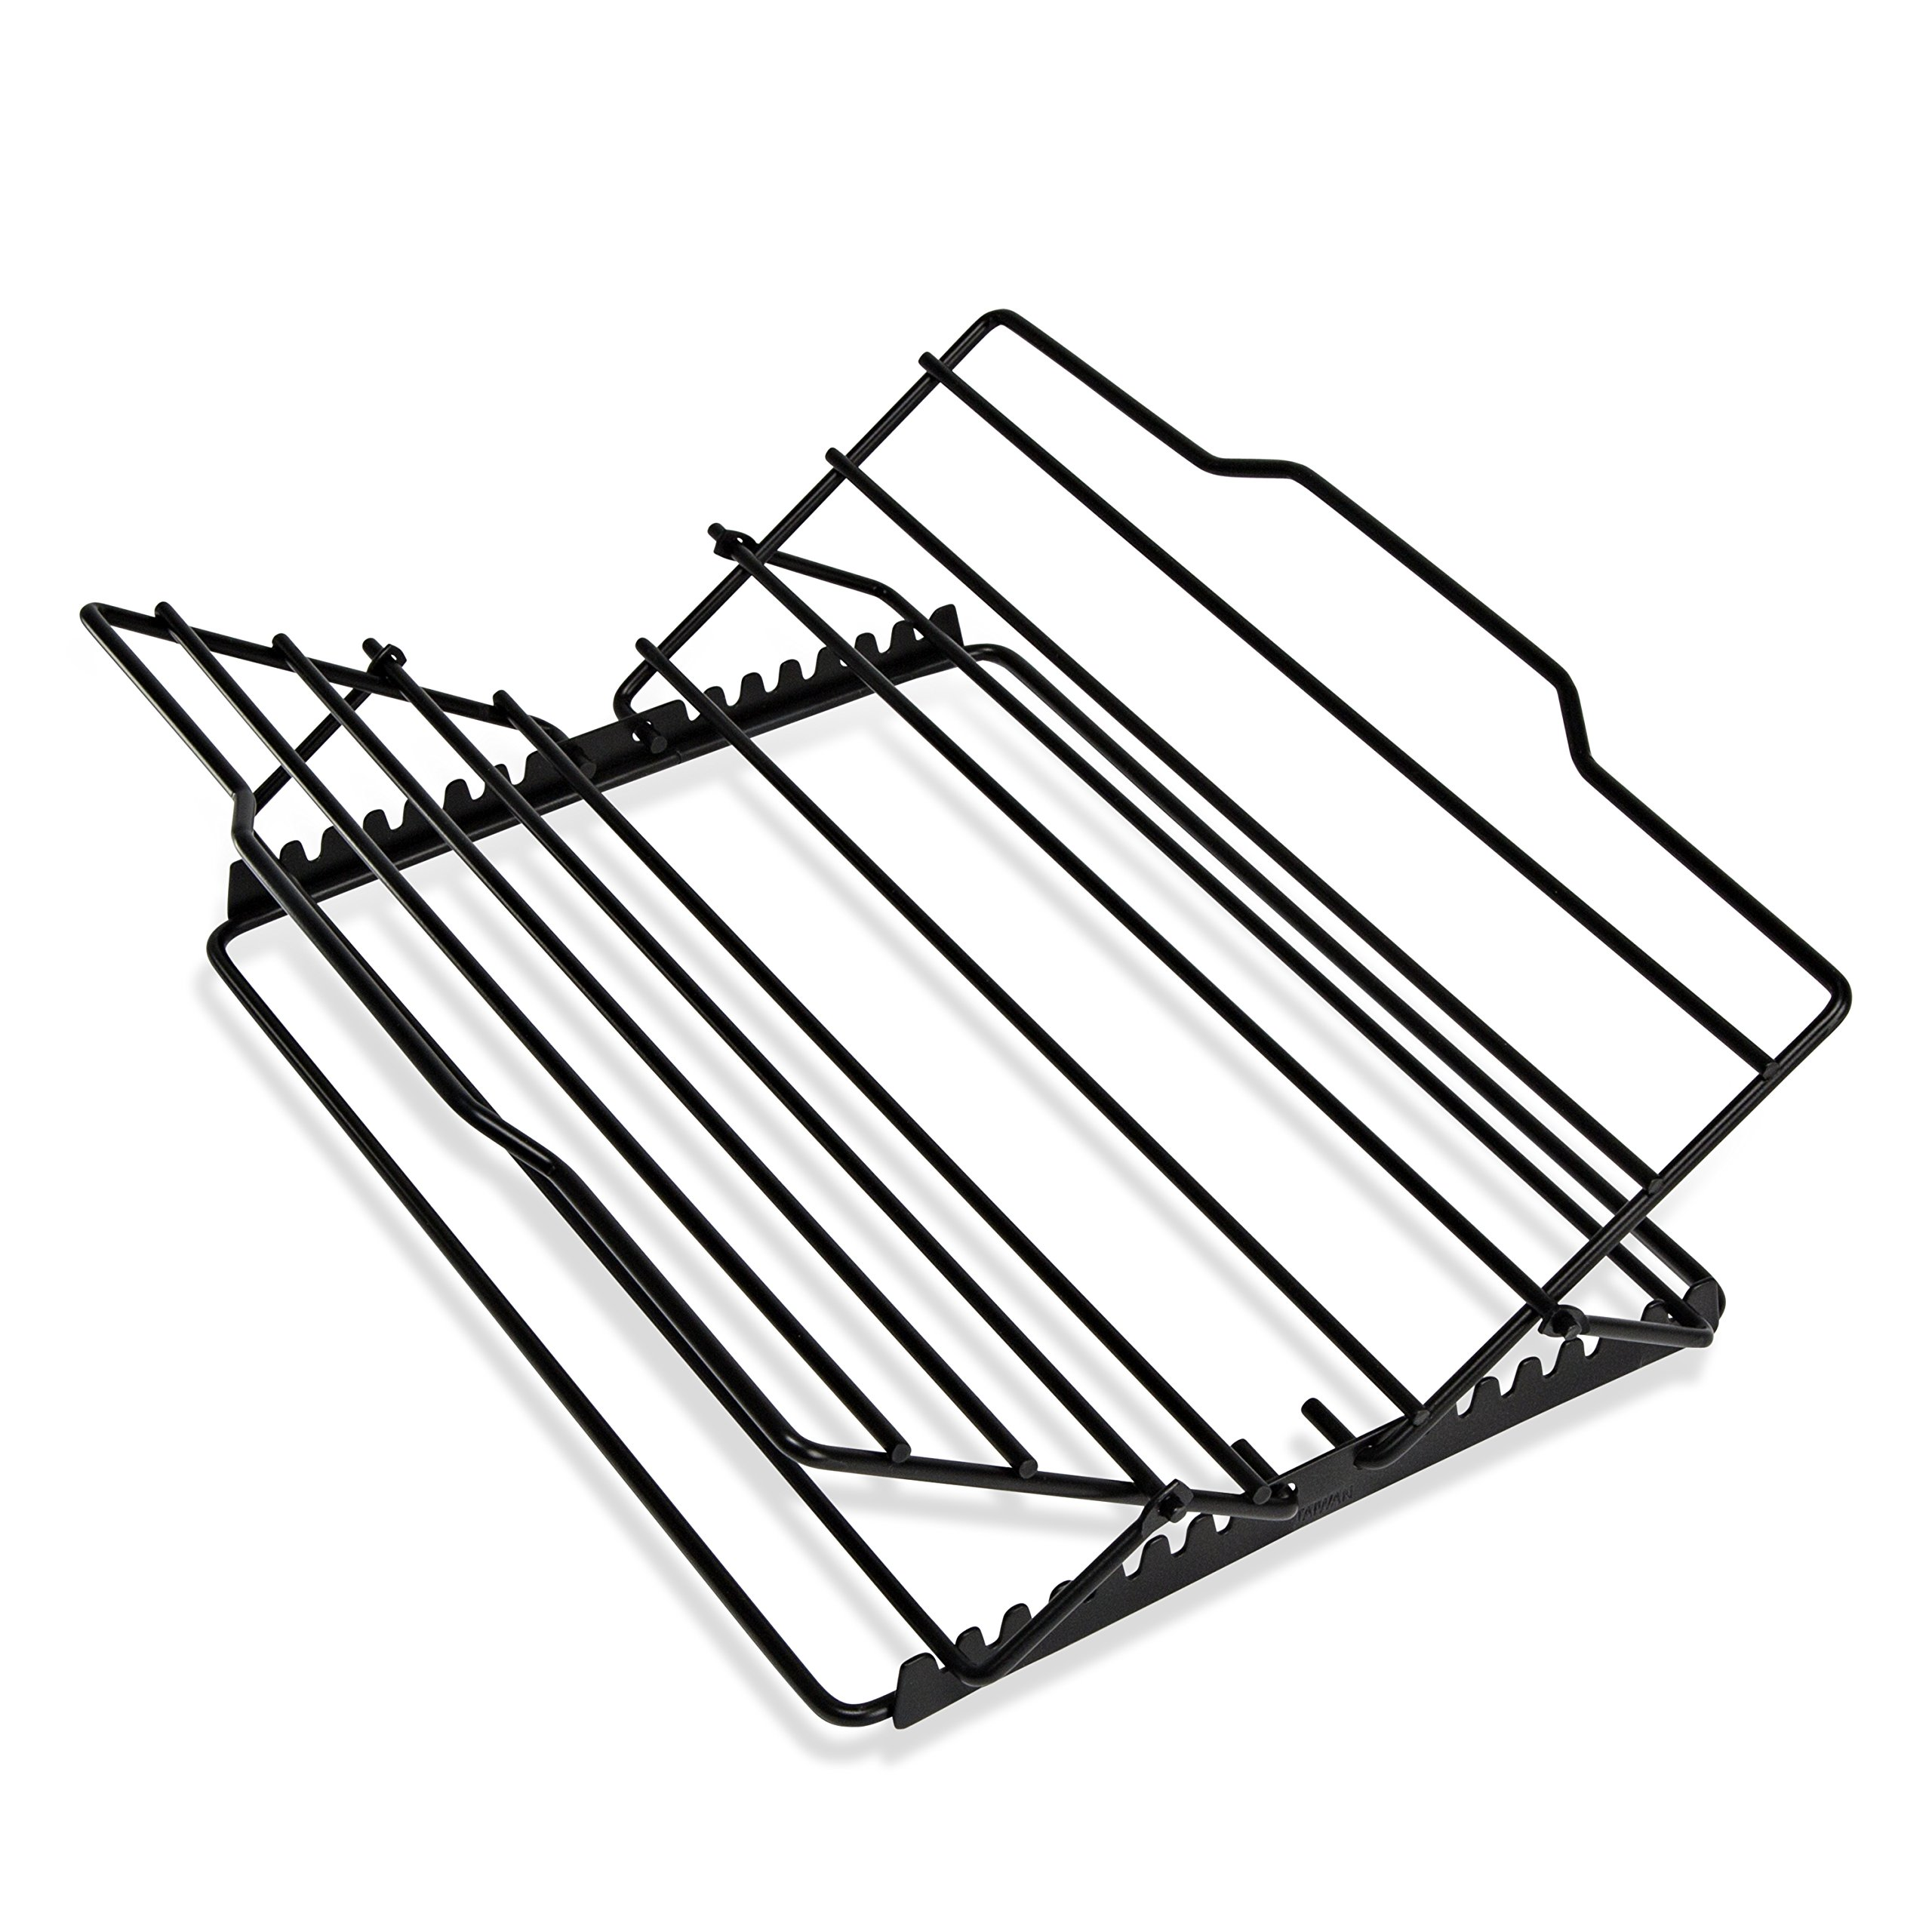 Honey-Can-Do 2555 Non-stick Adjustable Kitchen Supply Roasting Rack, 0.75-Inches H x 10.75-Inches W by Honey-Can-Do